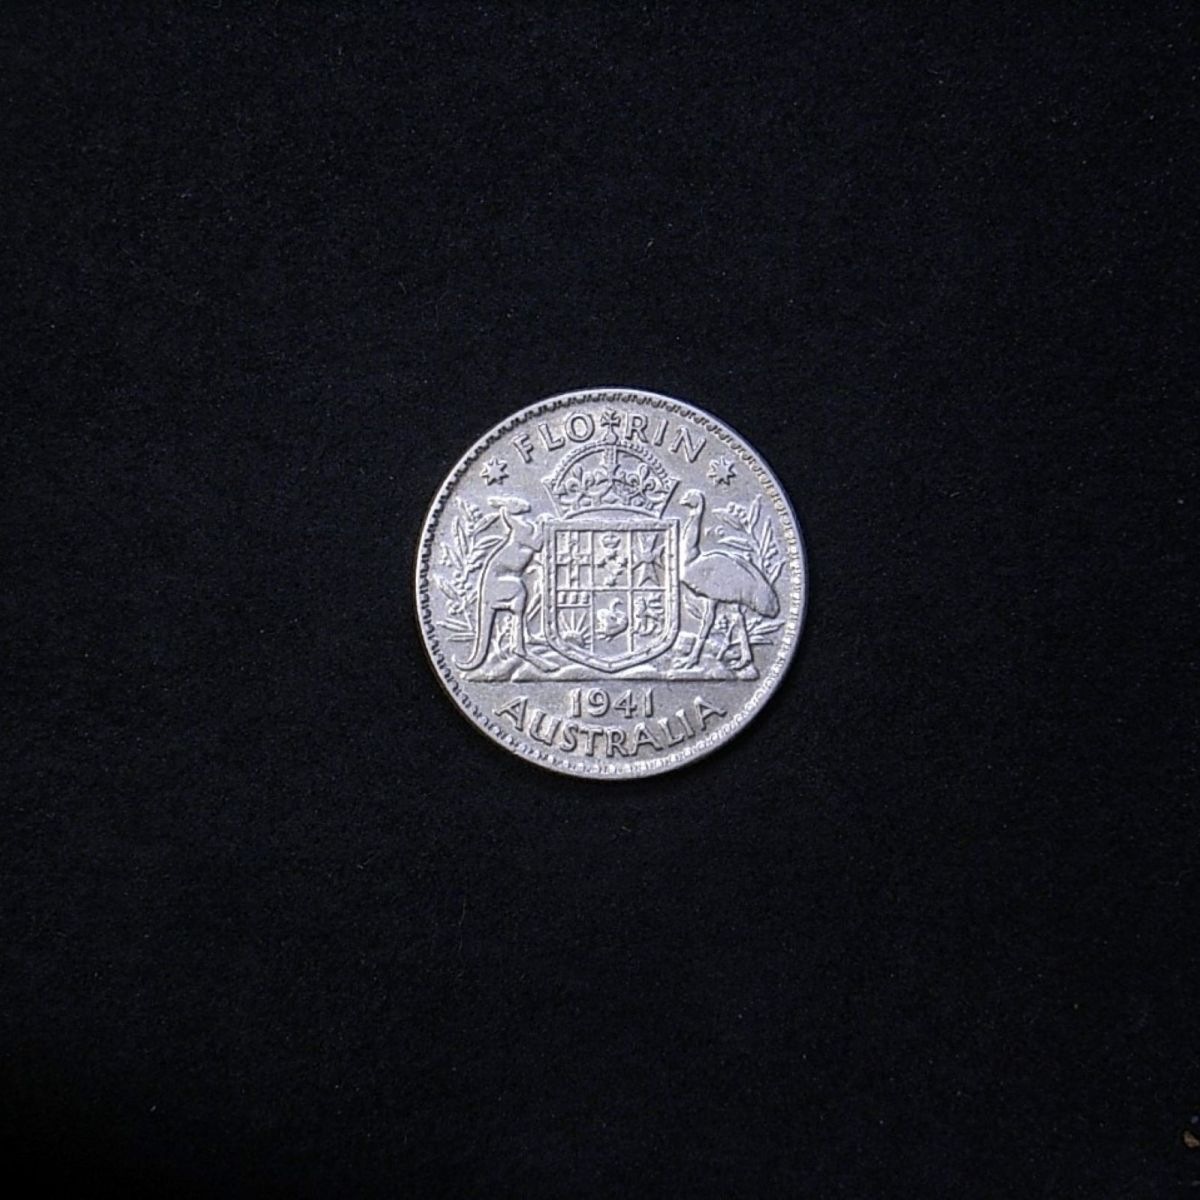 reverse Aussie florin 1941 showing overall appearance